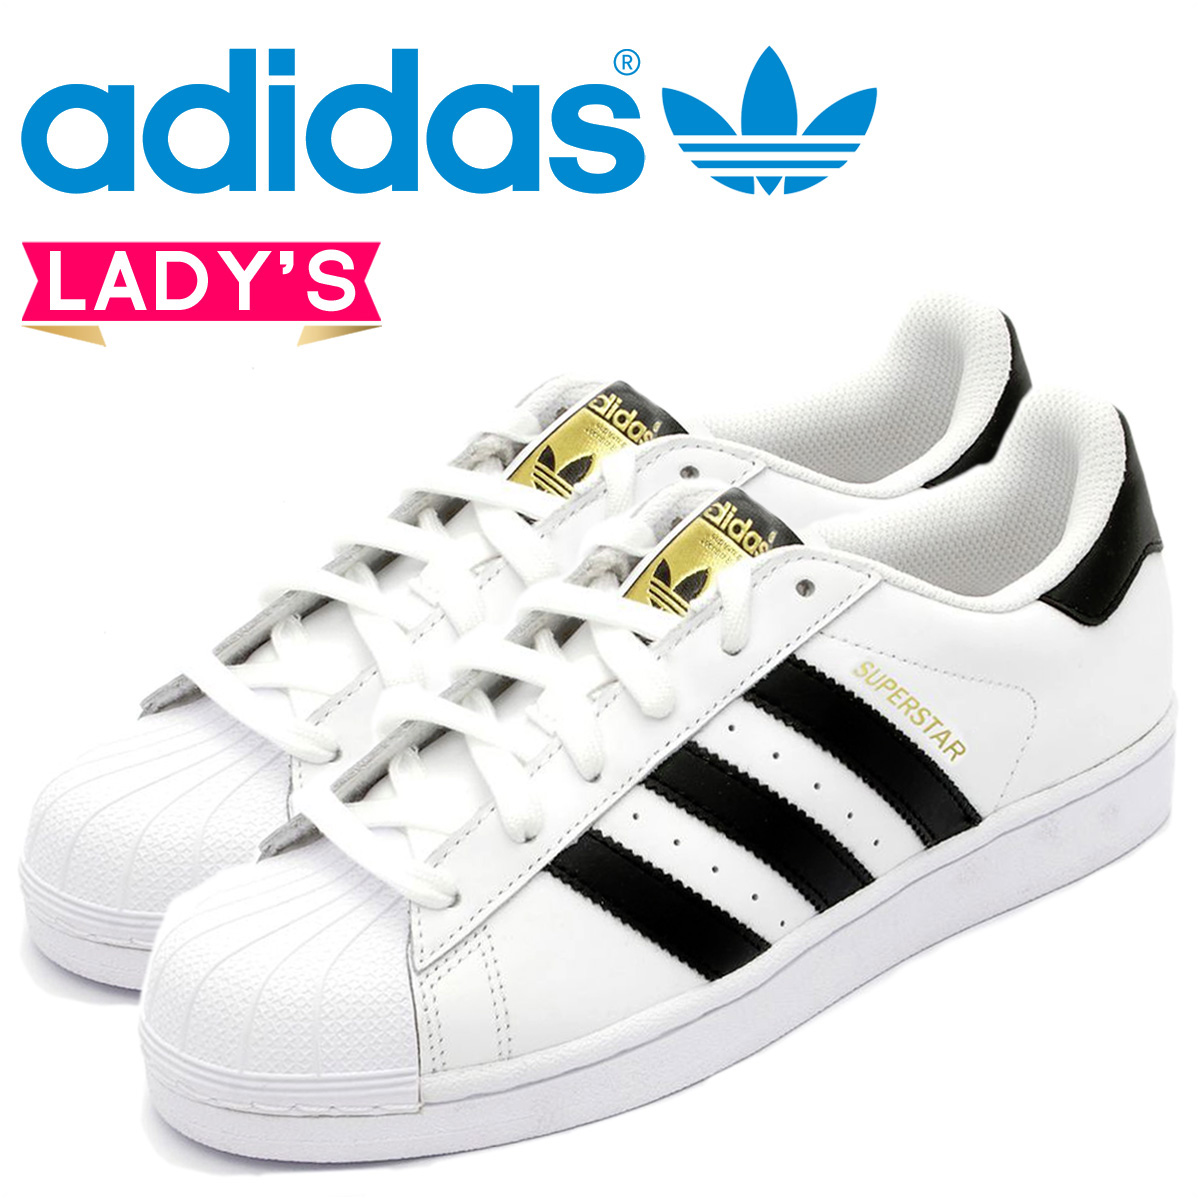 a037cef61789 adidas Originals adidas originals superstar sneakers Womens SUPERSTAR J  C77154 shoes white  8 4 Add in stock